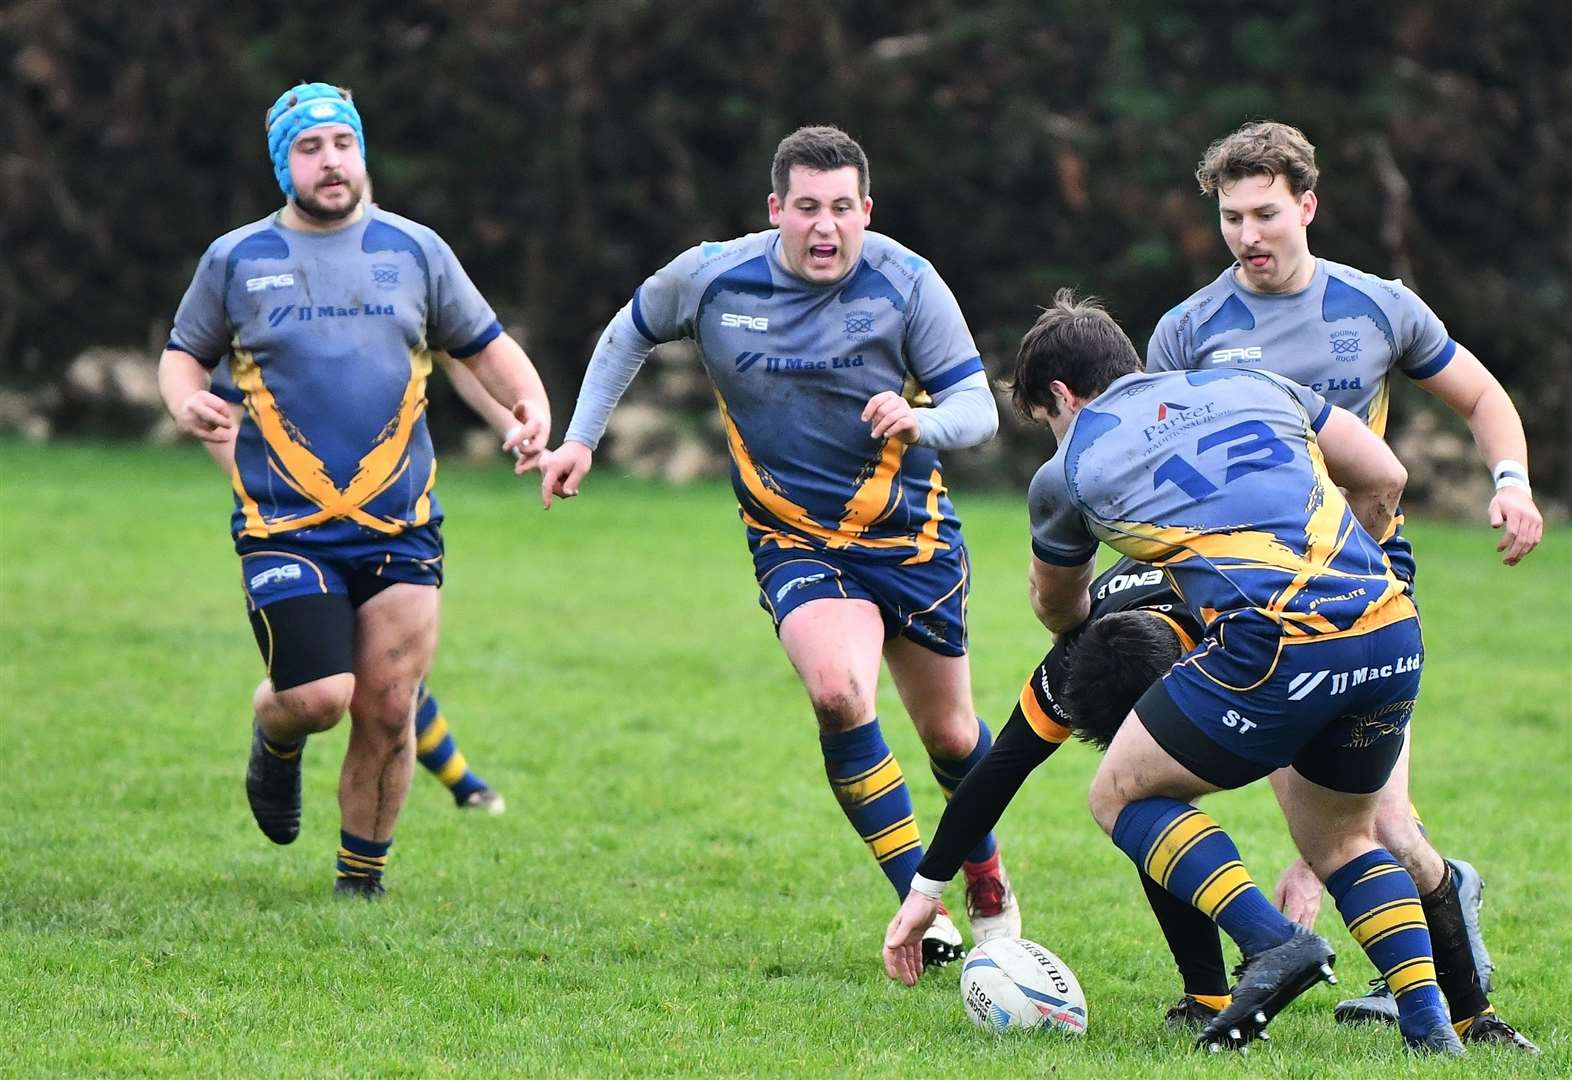 RUGBY UNION: Bourne find a way to win against tough opponents